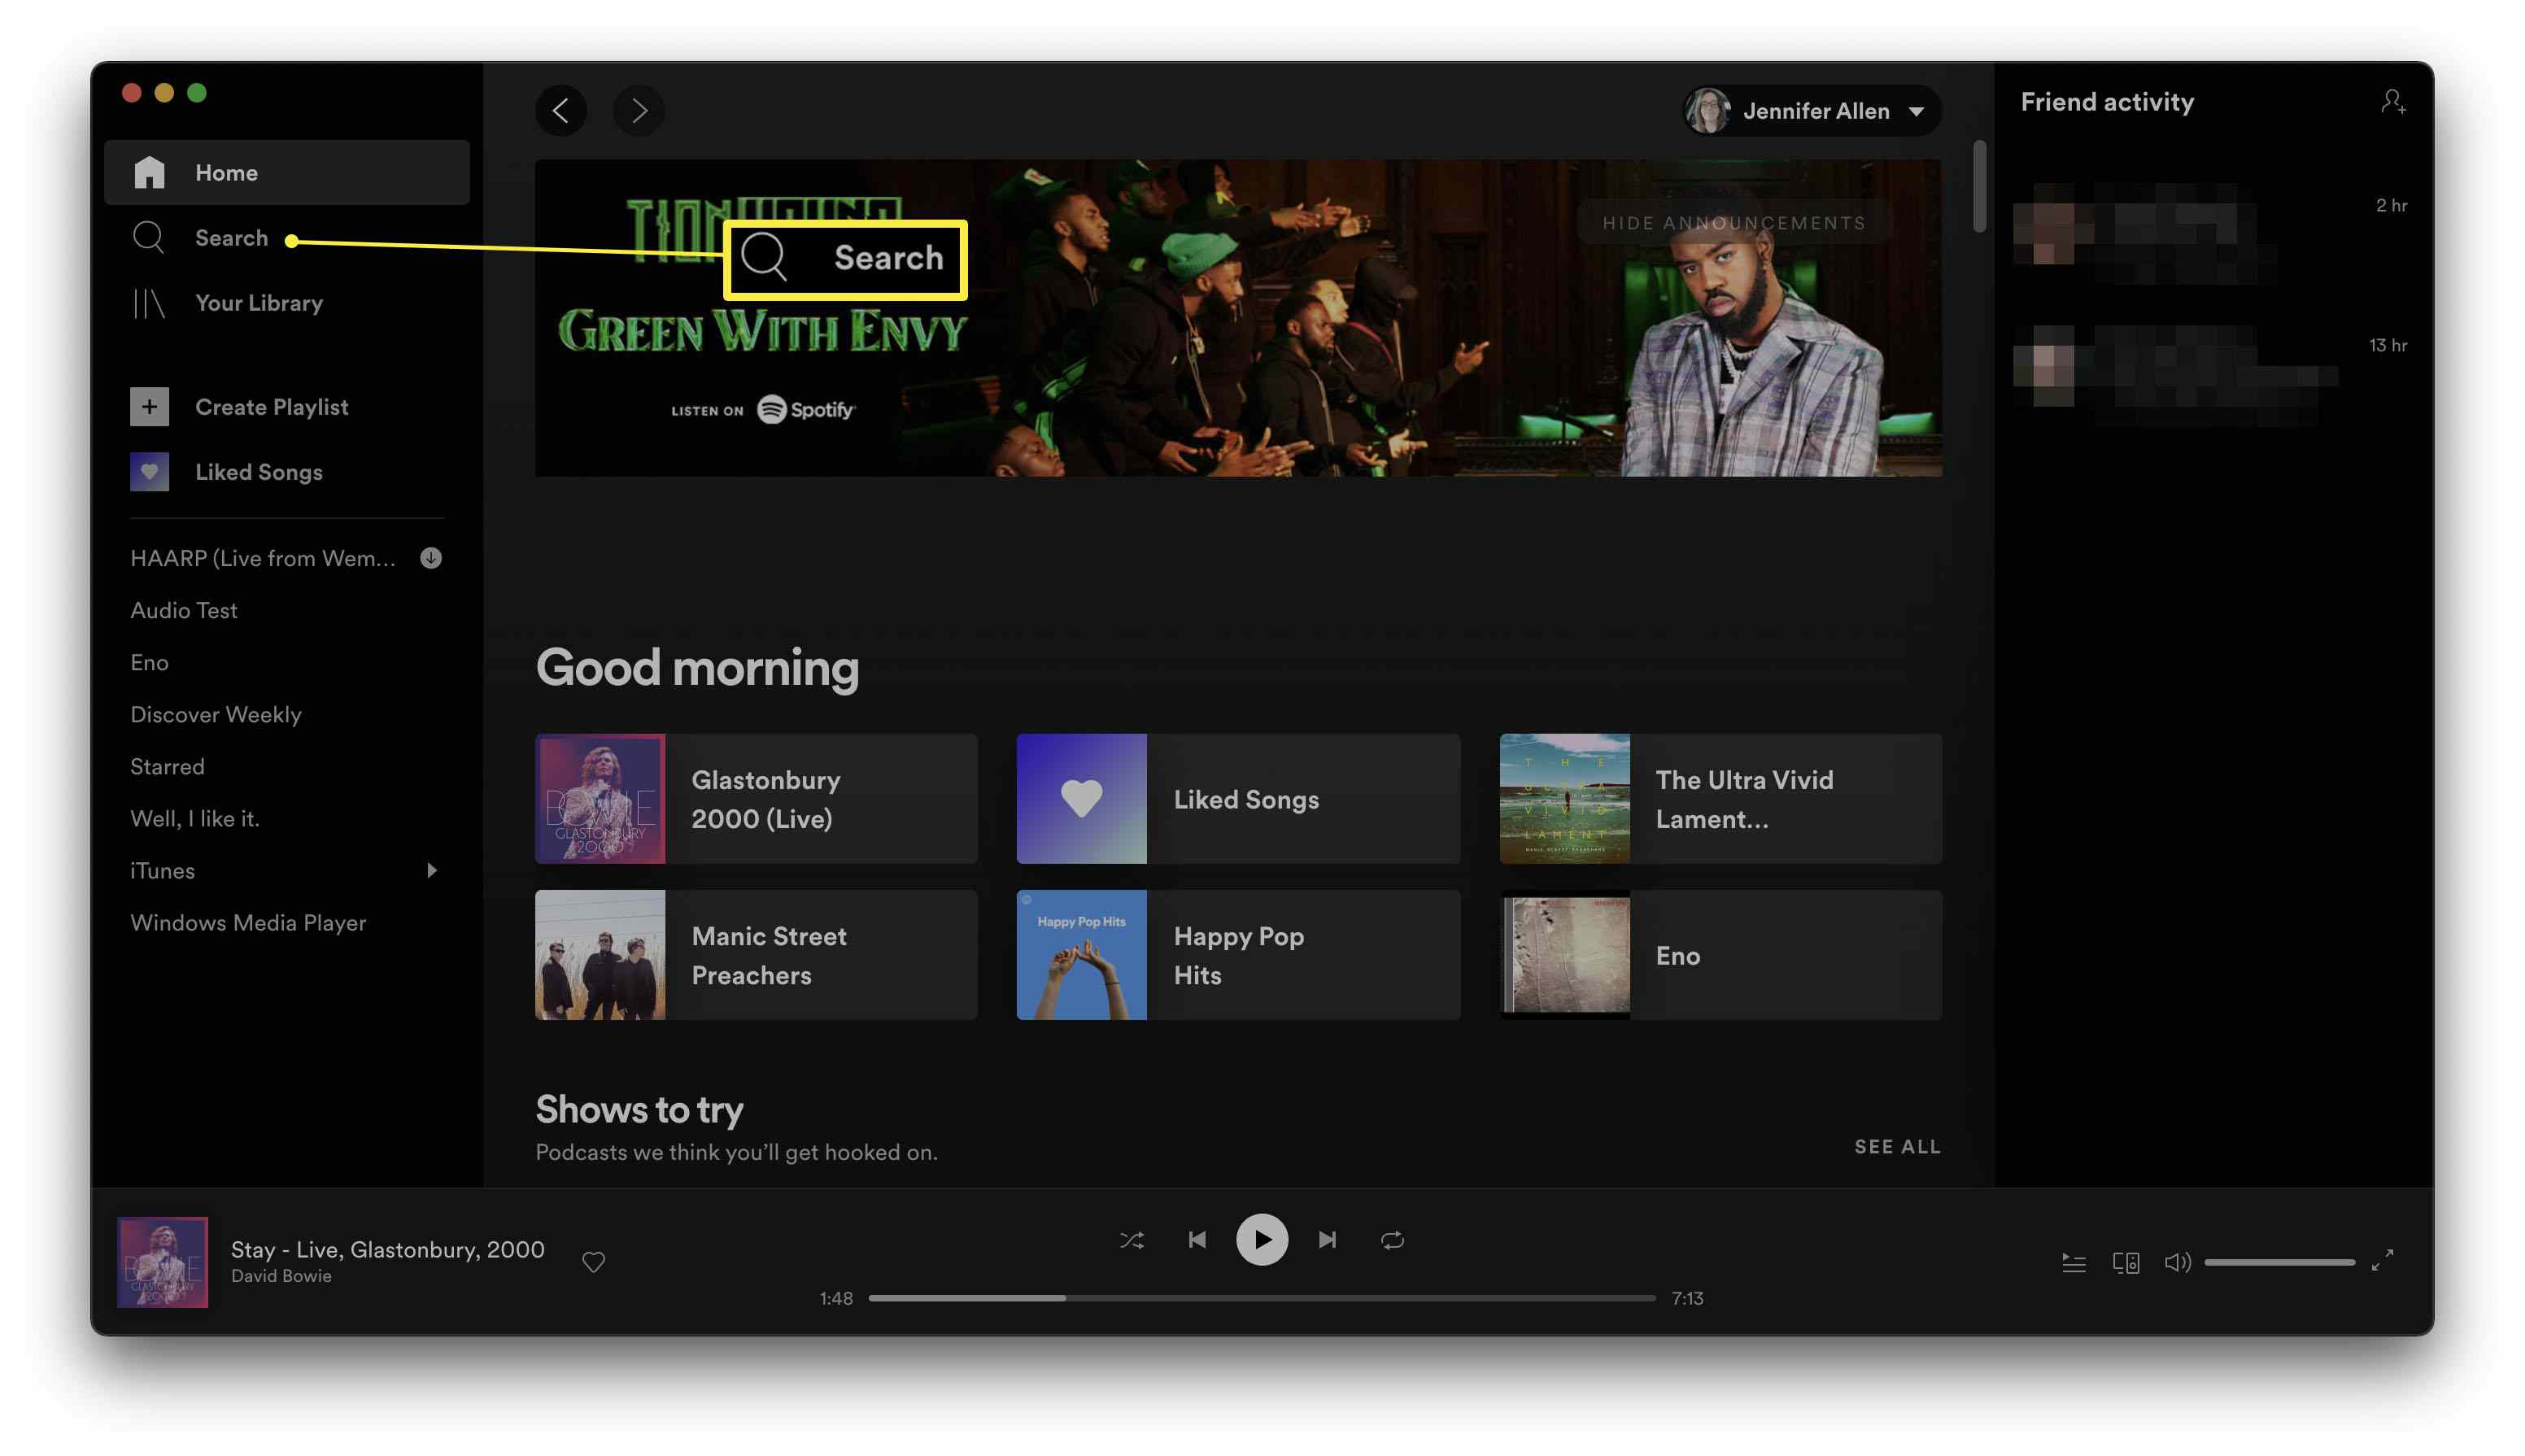 Spotify with the search bar highlighted